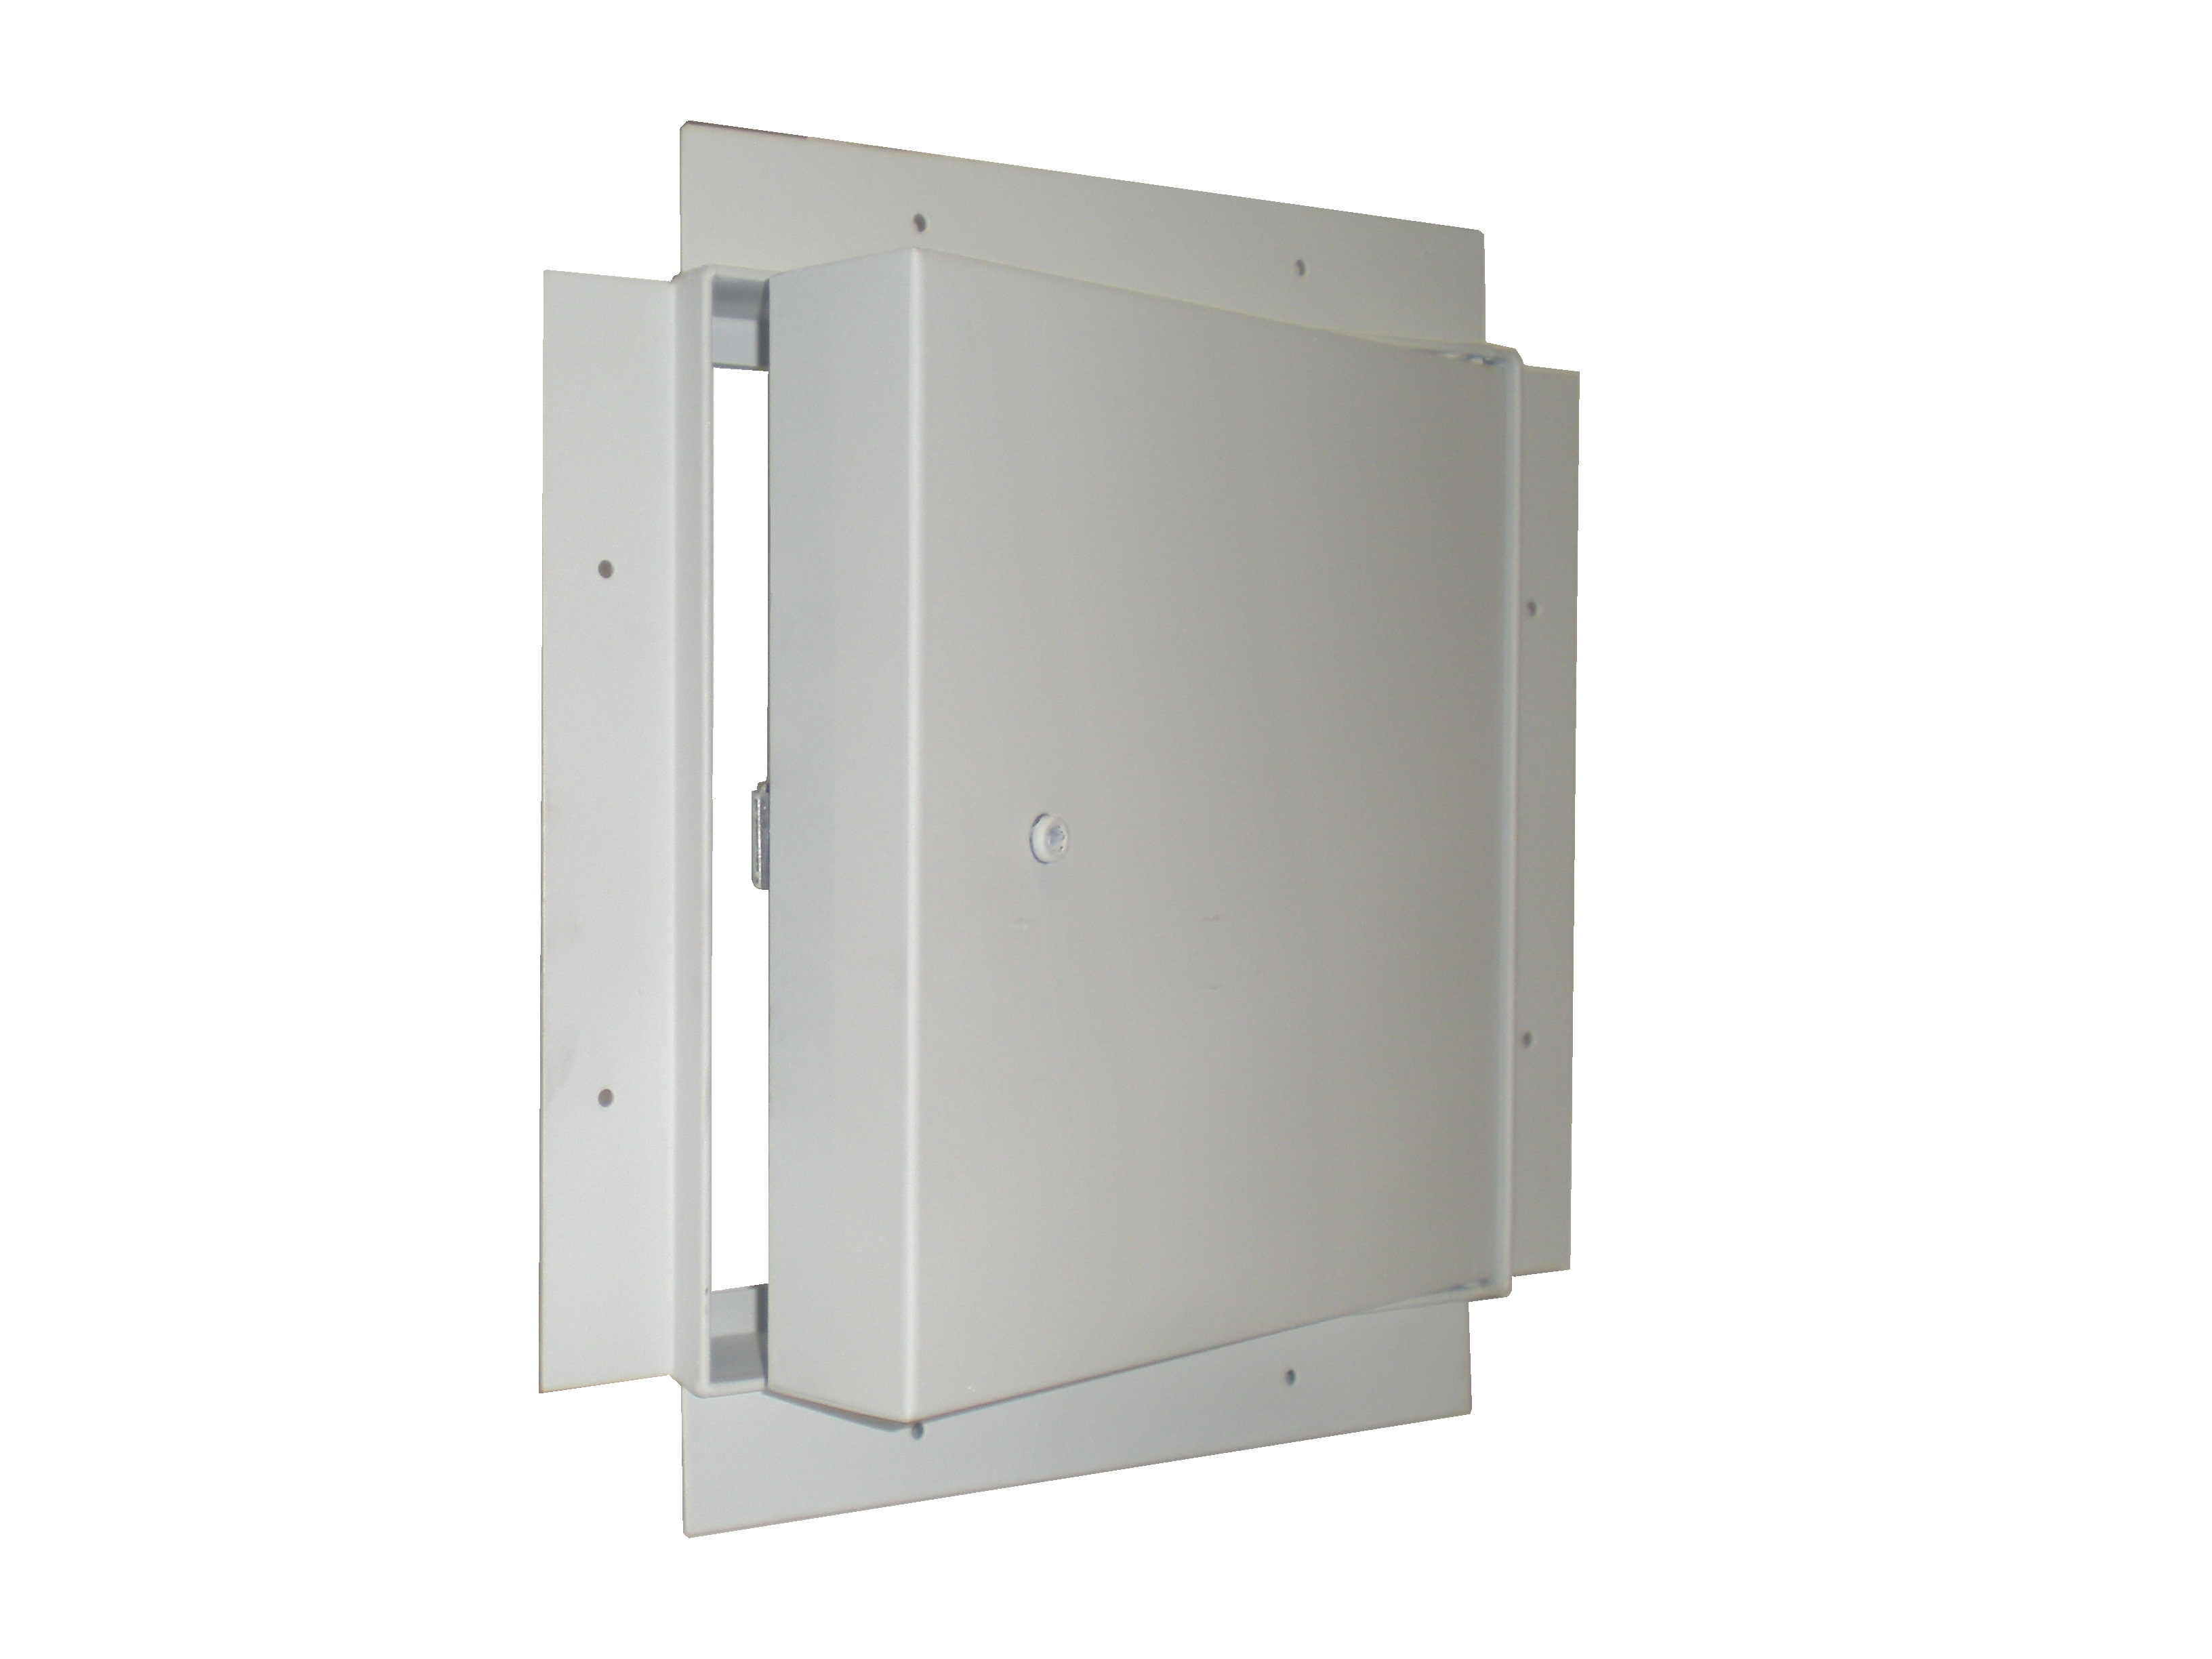 Fd3rf 3 hour fire rated recessed flange access panel for for 1 hour rated door